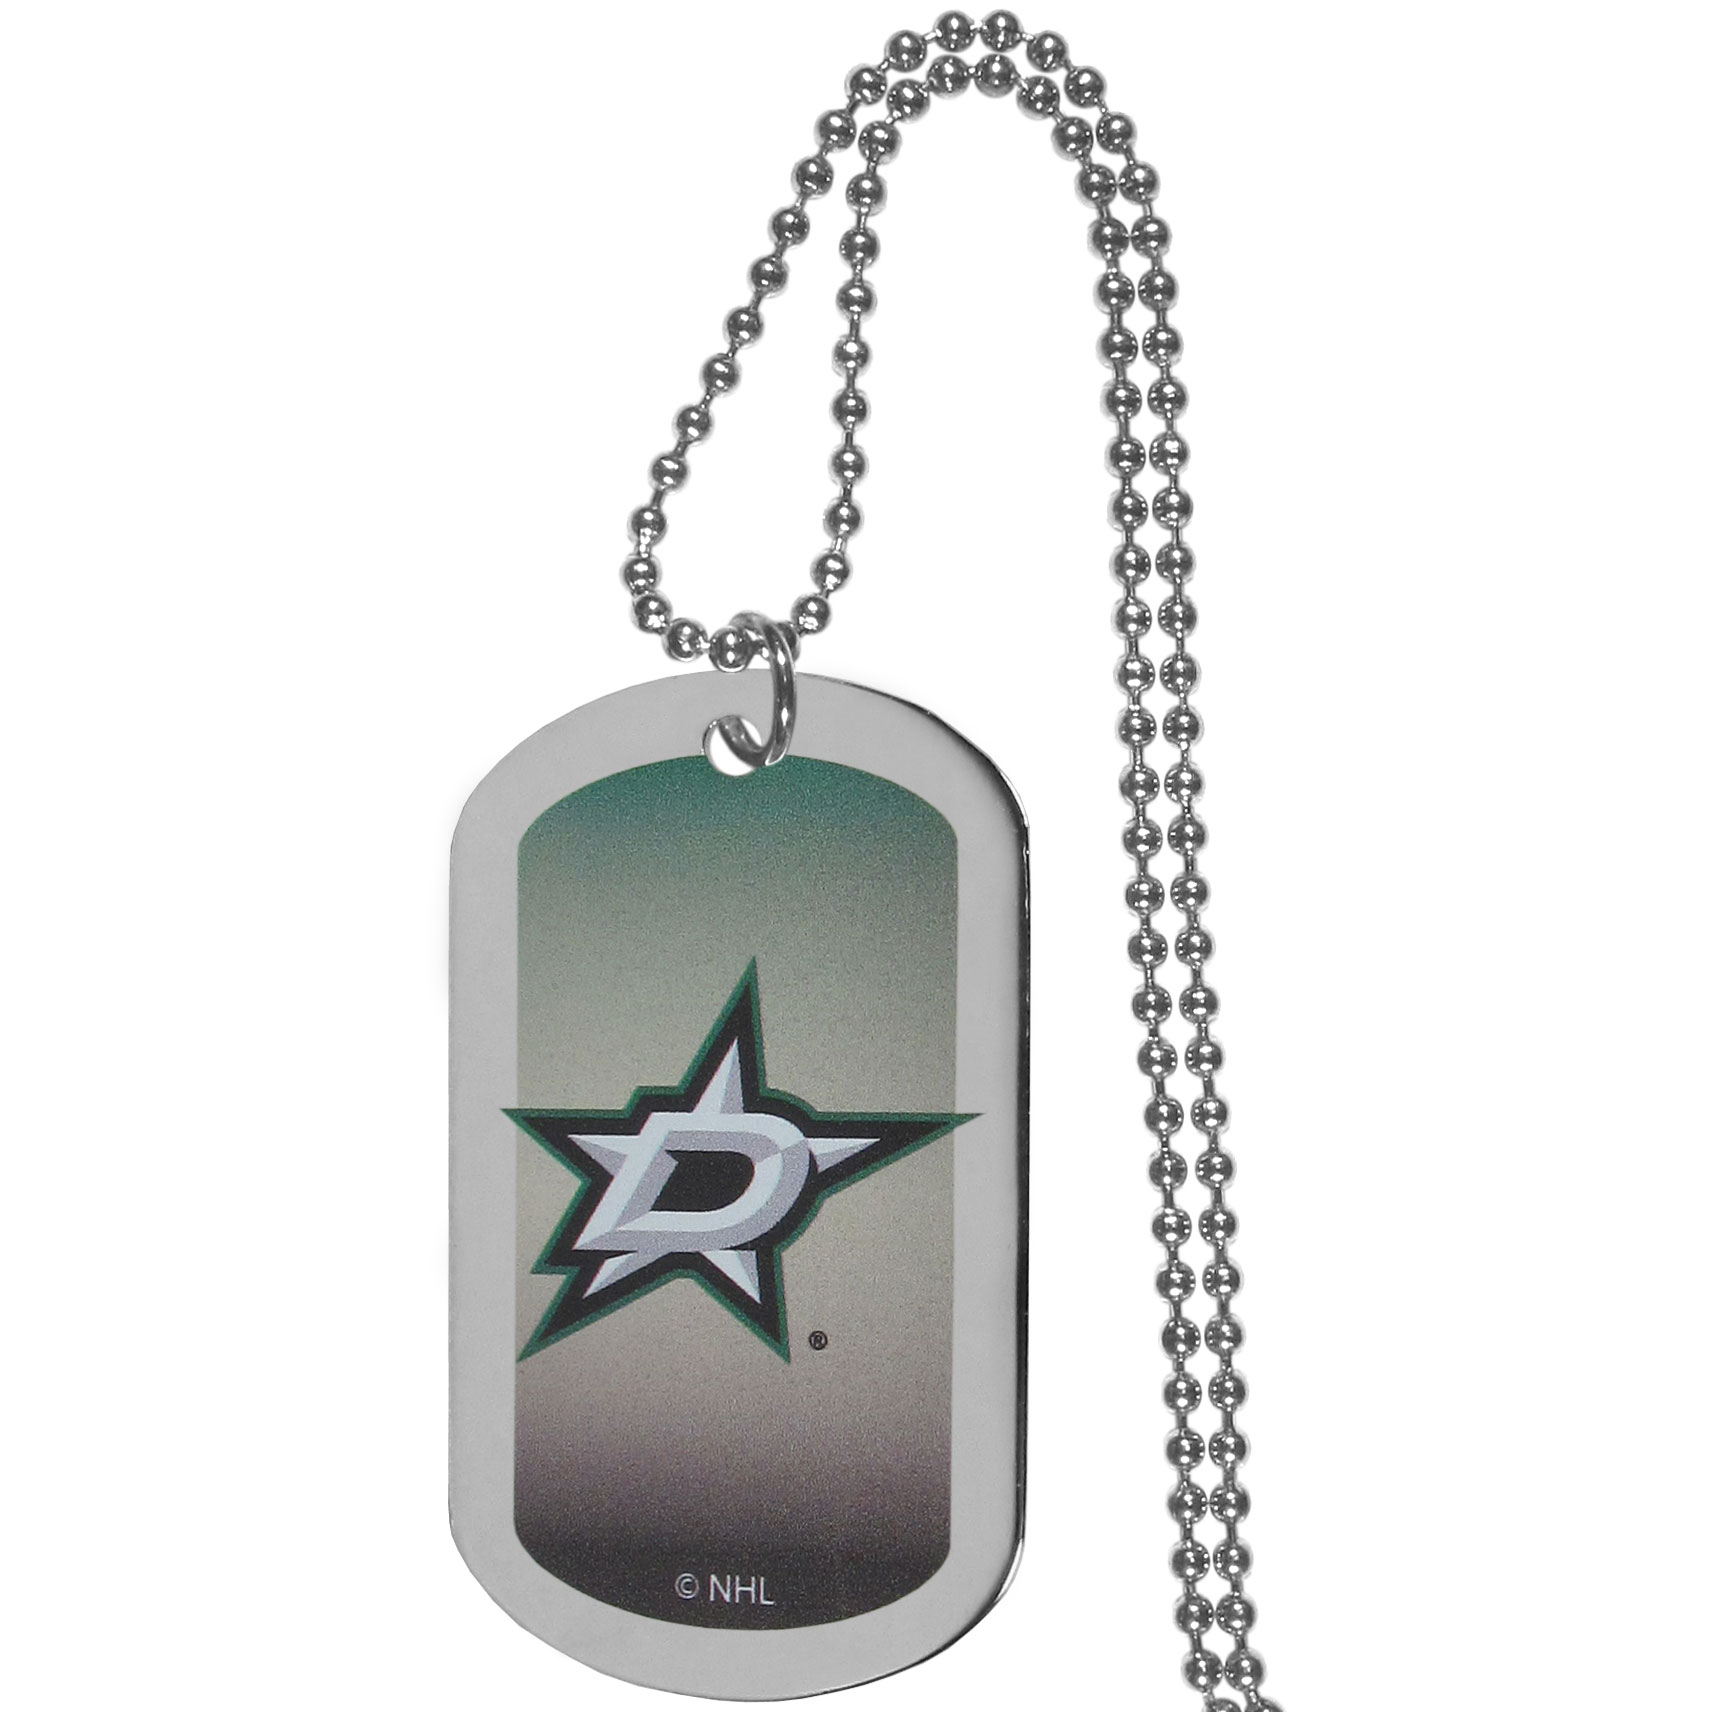 Dallas Stars™ Team Tag Necklace - Dog tag necklaces are a fashion statement that is here to stay. The sporty version of the classic tag features a gradient print in team colors featuring a full color team logo over a high polish tag to create a bold and sporty look. The tag comes on a 26 inch ball chain with a ball and joint clasp. Any Dallas Stars™ would be proud to wear this attractive fashion accessory.